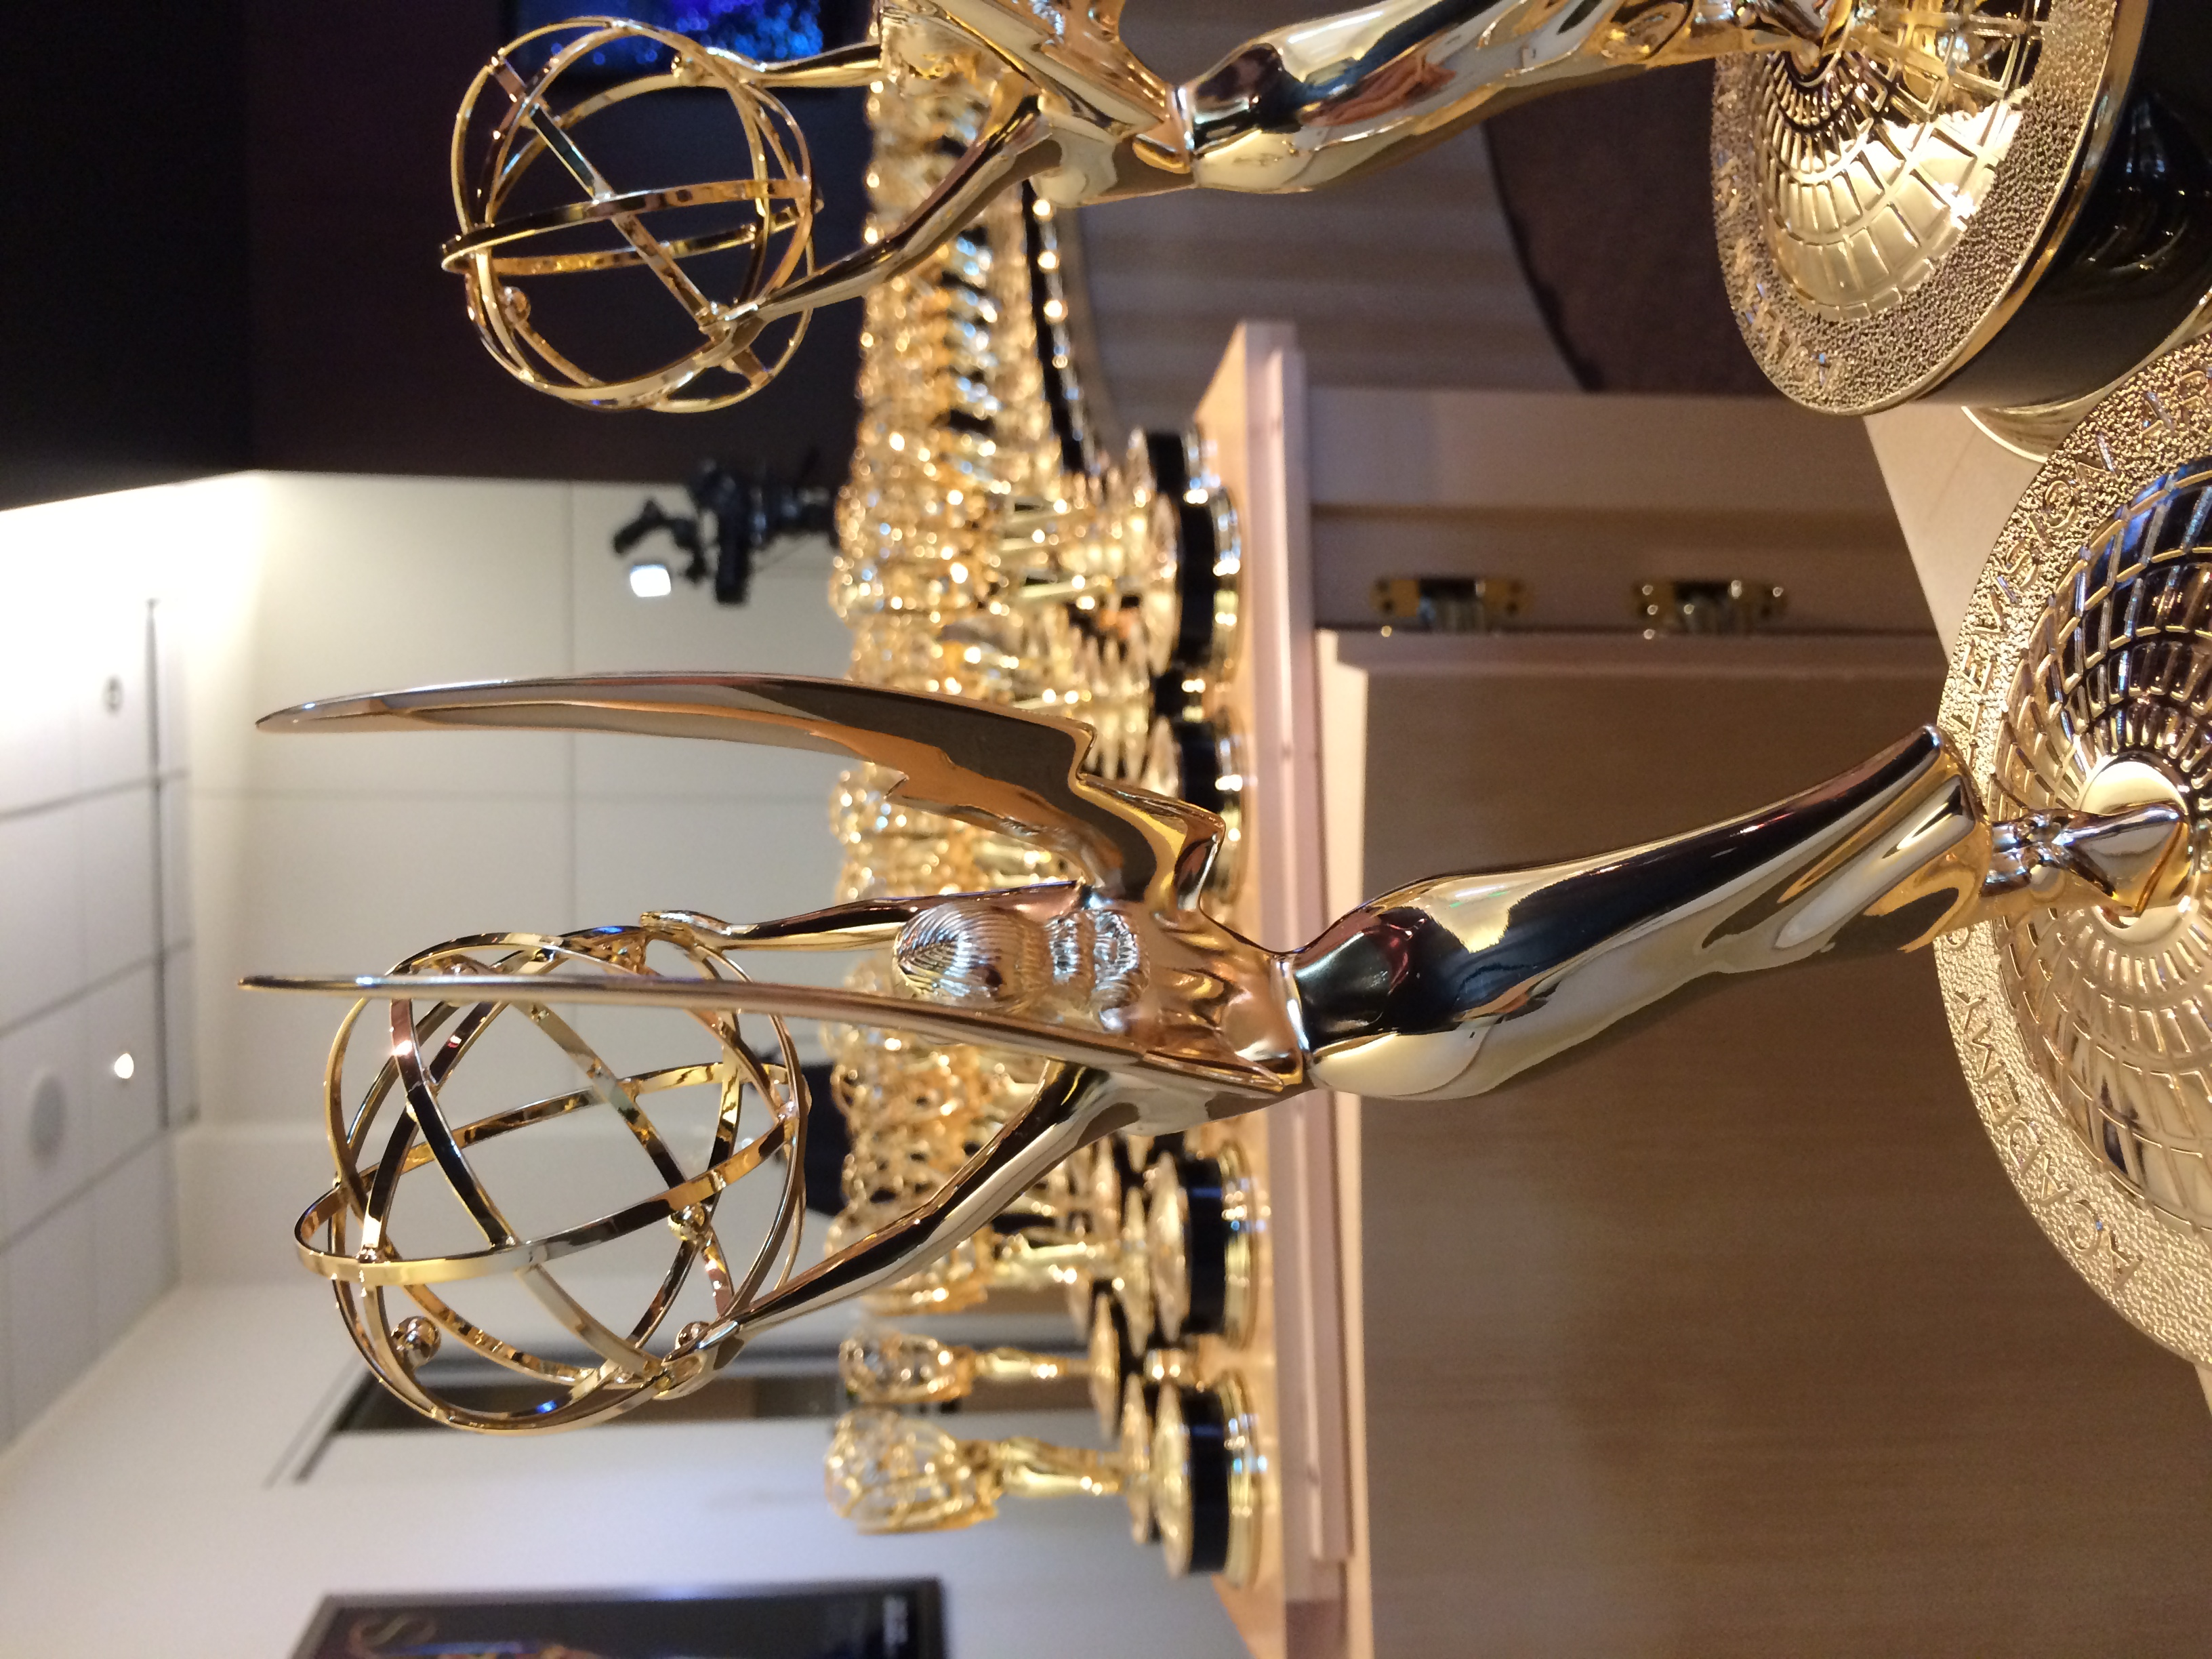 From Inside the LA Area Emmy Award Ceremony